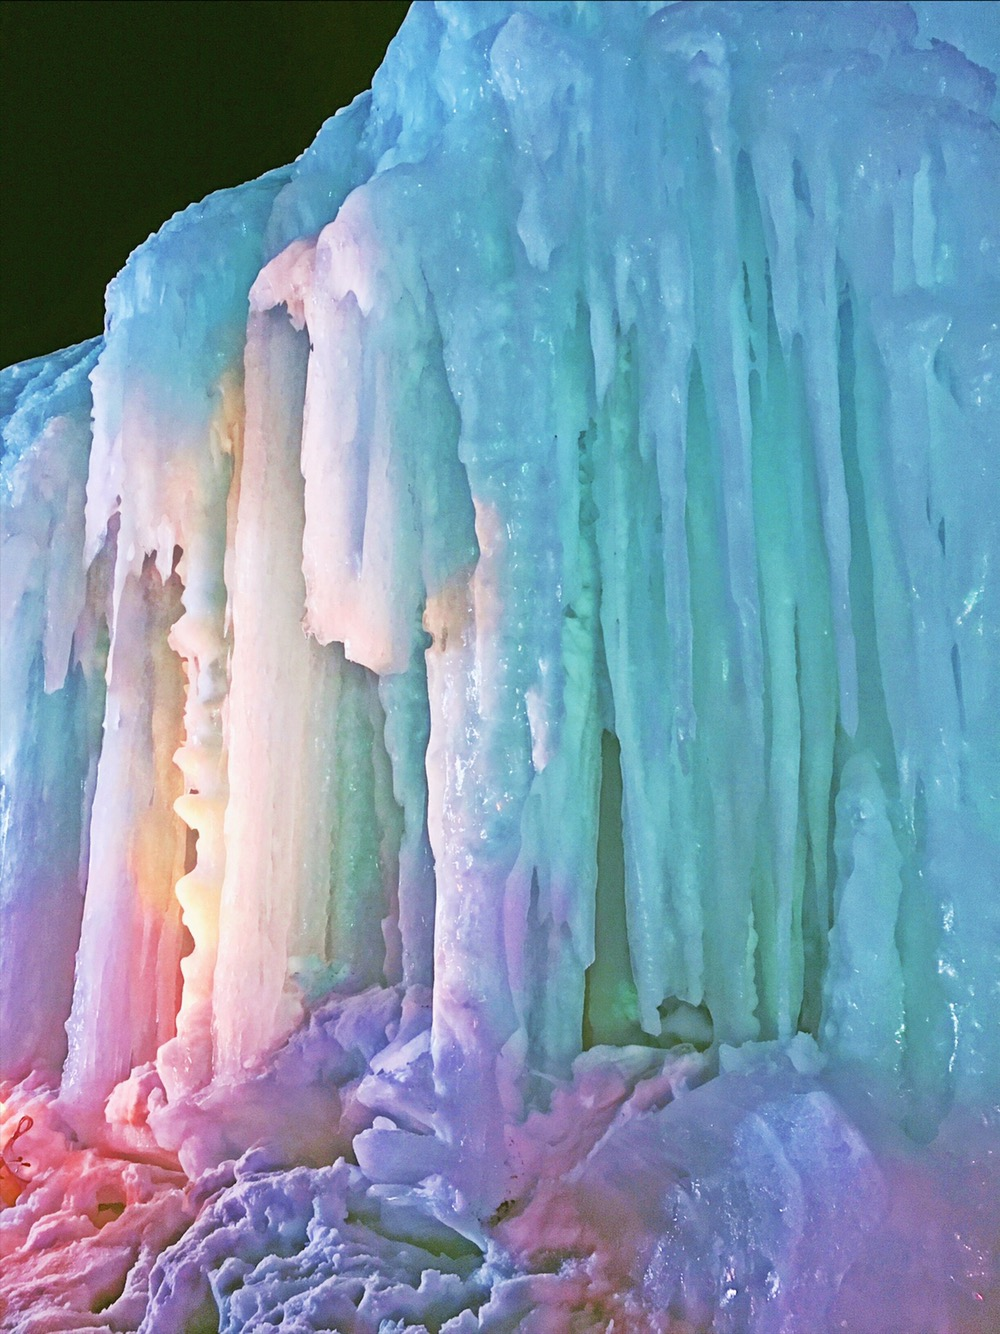 Sounkyo Hot Springs Ice Festival